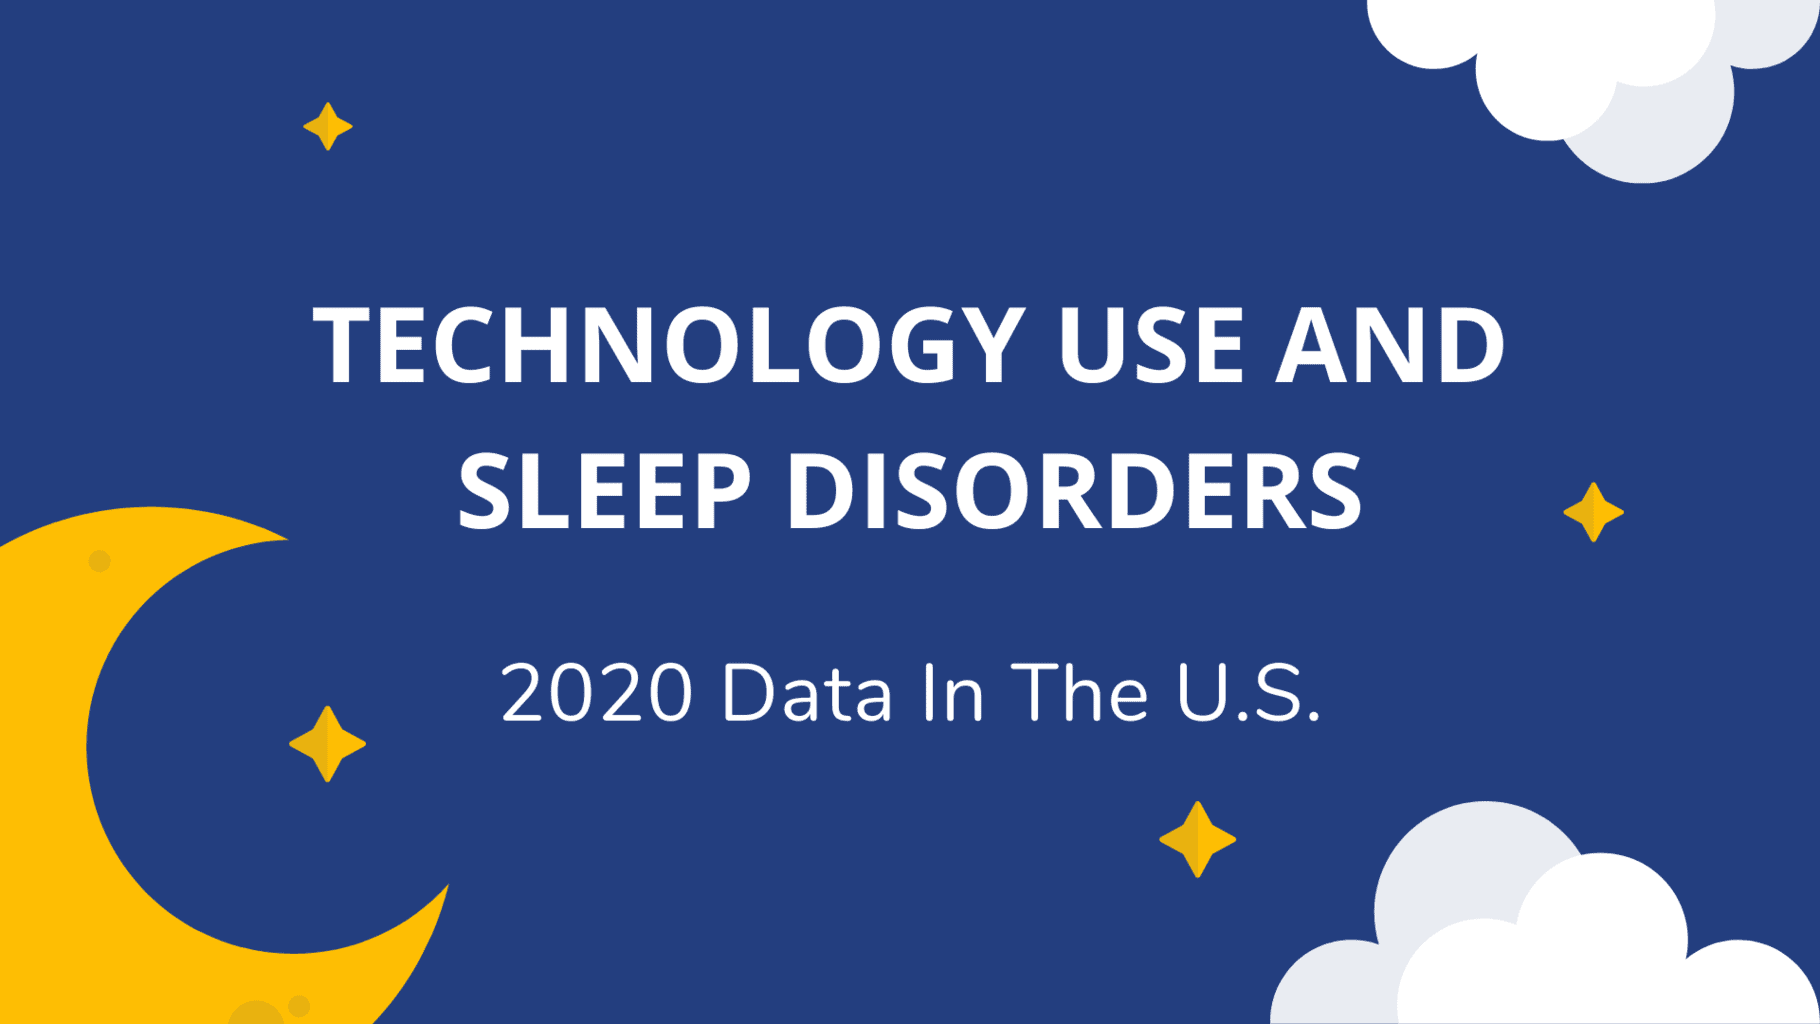 Technology Use And Sleep Disorders In The U.S. Featured Image